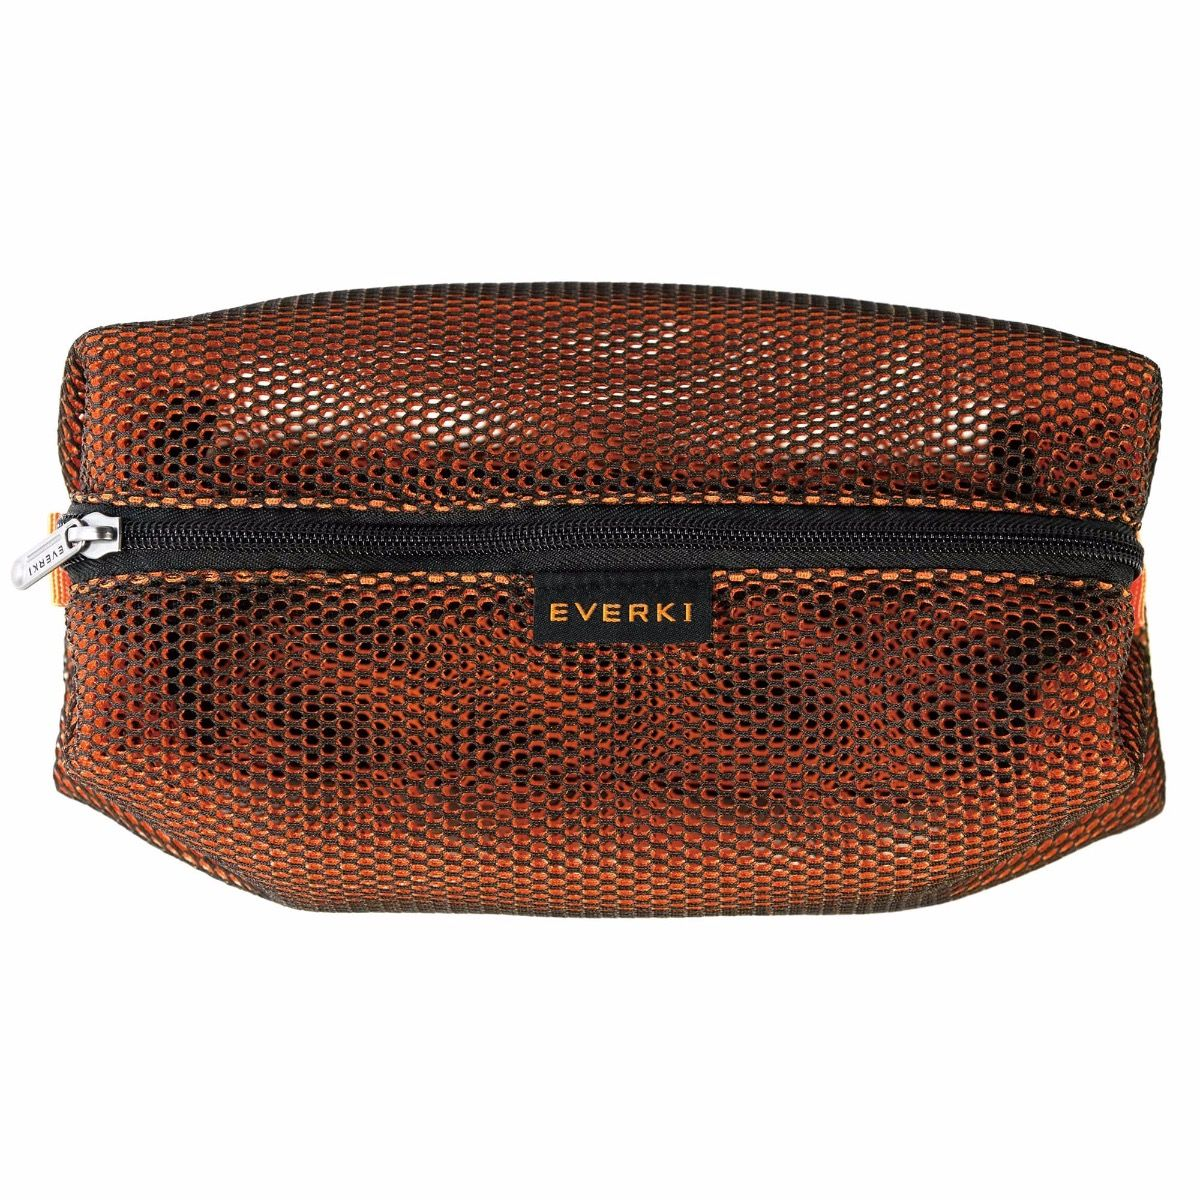 EVERKI Accessories Pouch